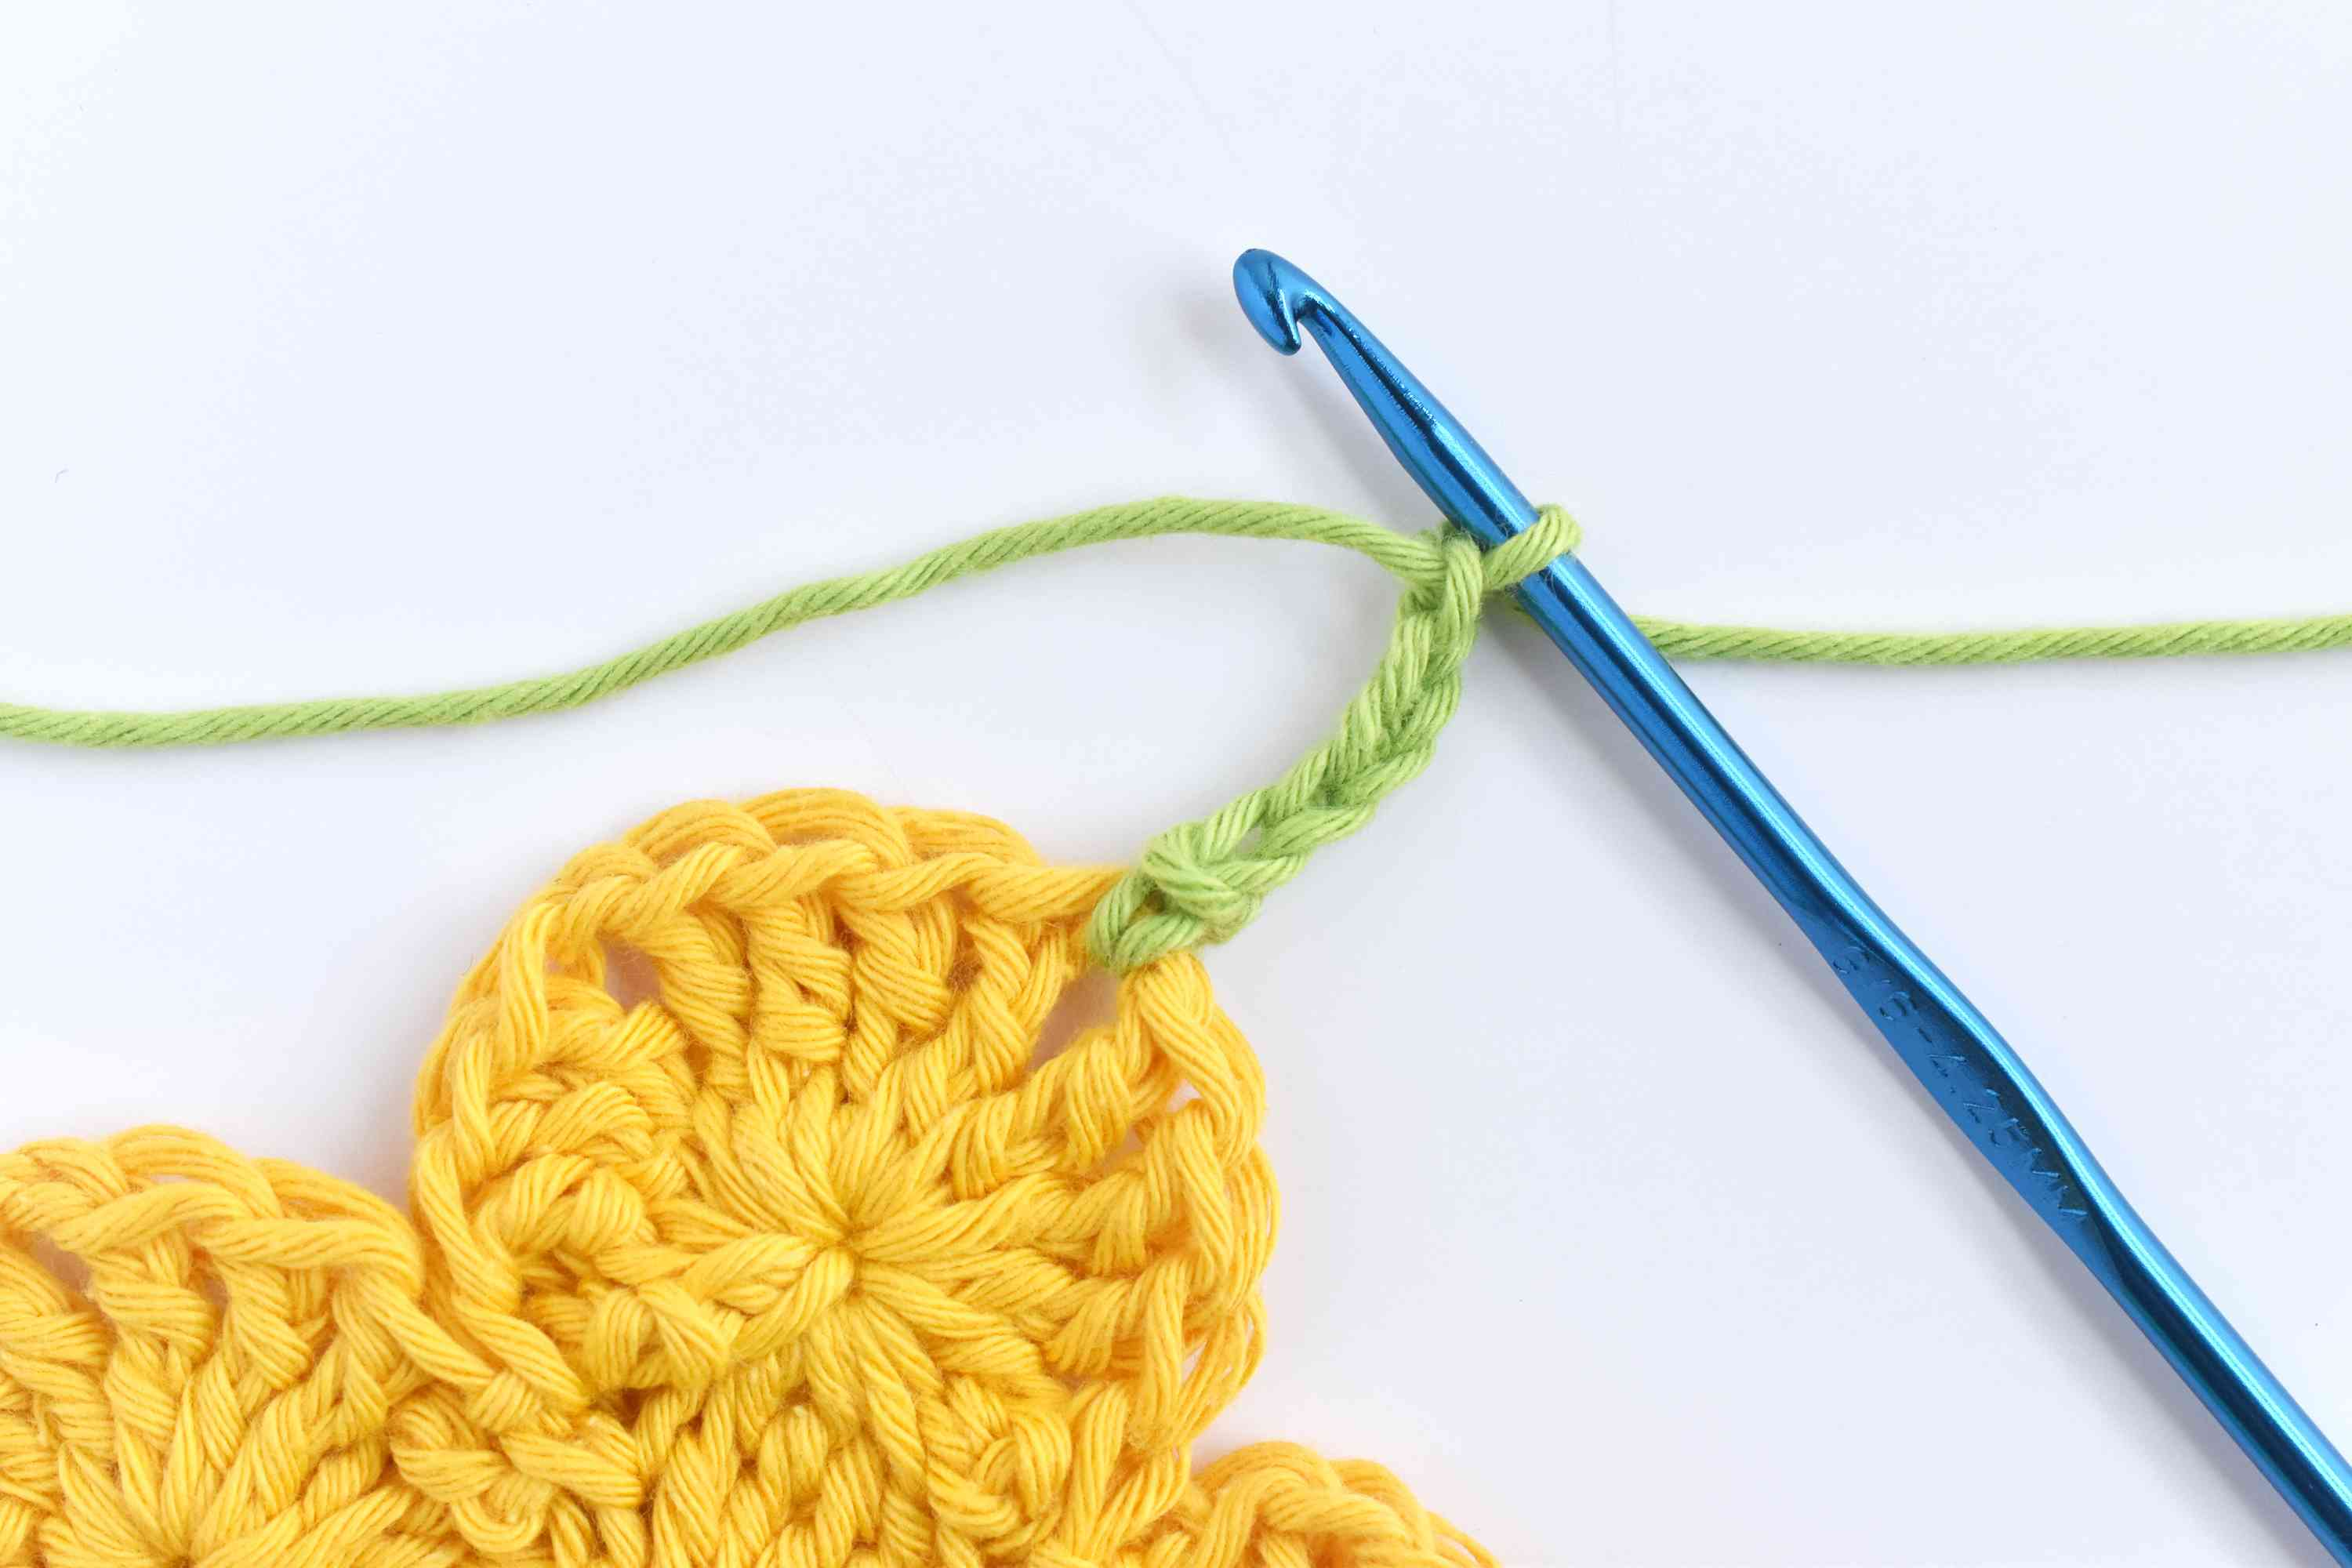 Join Yarn in a Chain 1 Spaces and Chain 5